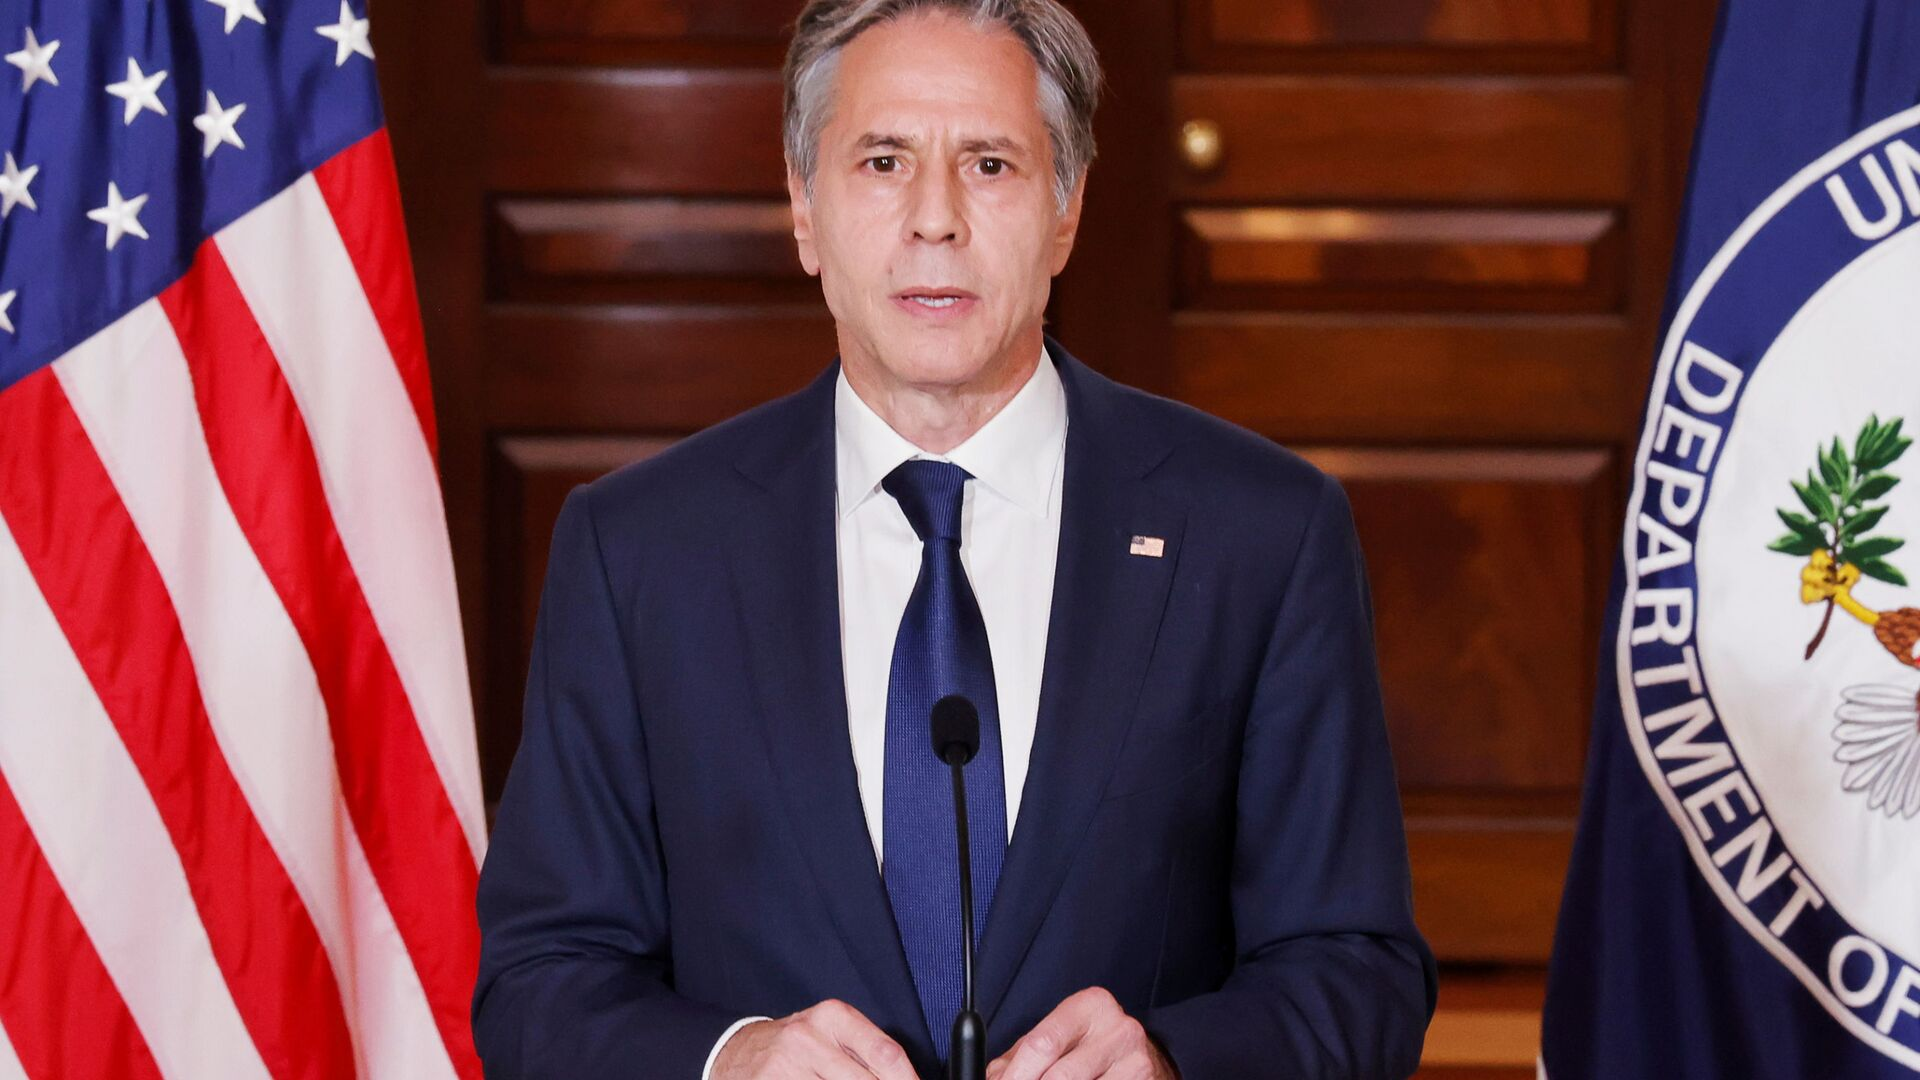 U.S. Secretary of State Antony Blinken delivers remarks following talks on the situation in Afghanistan, at the State Department in Washington, U.S., August 30, 2021 - Sputnik International, 1920, 16.09.2021